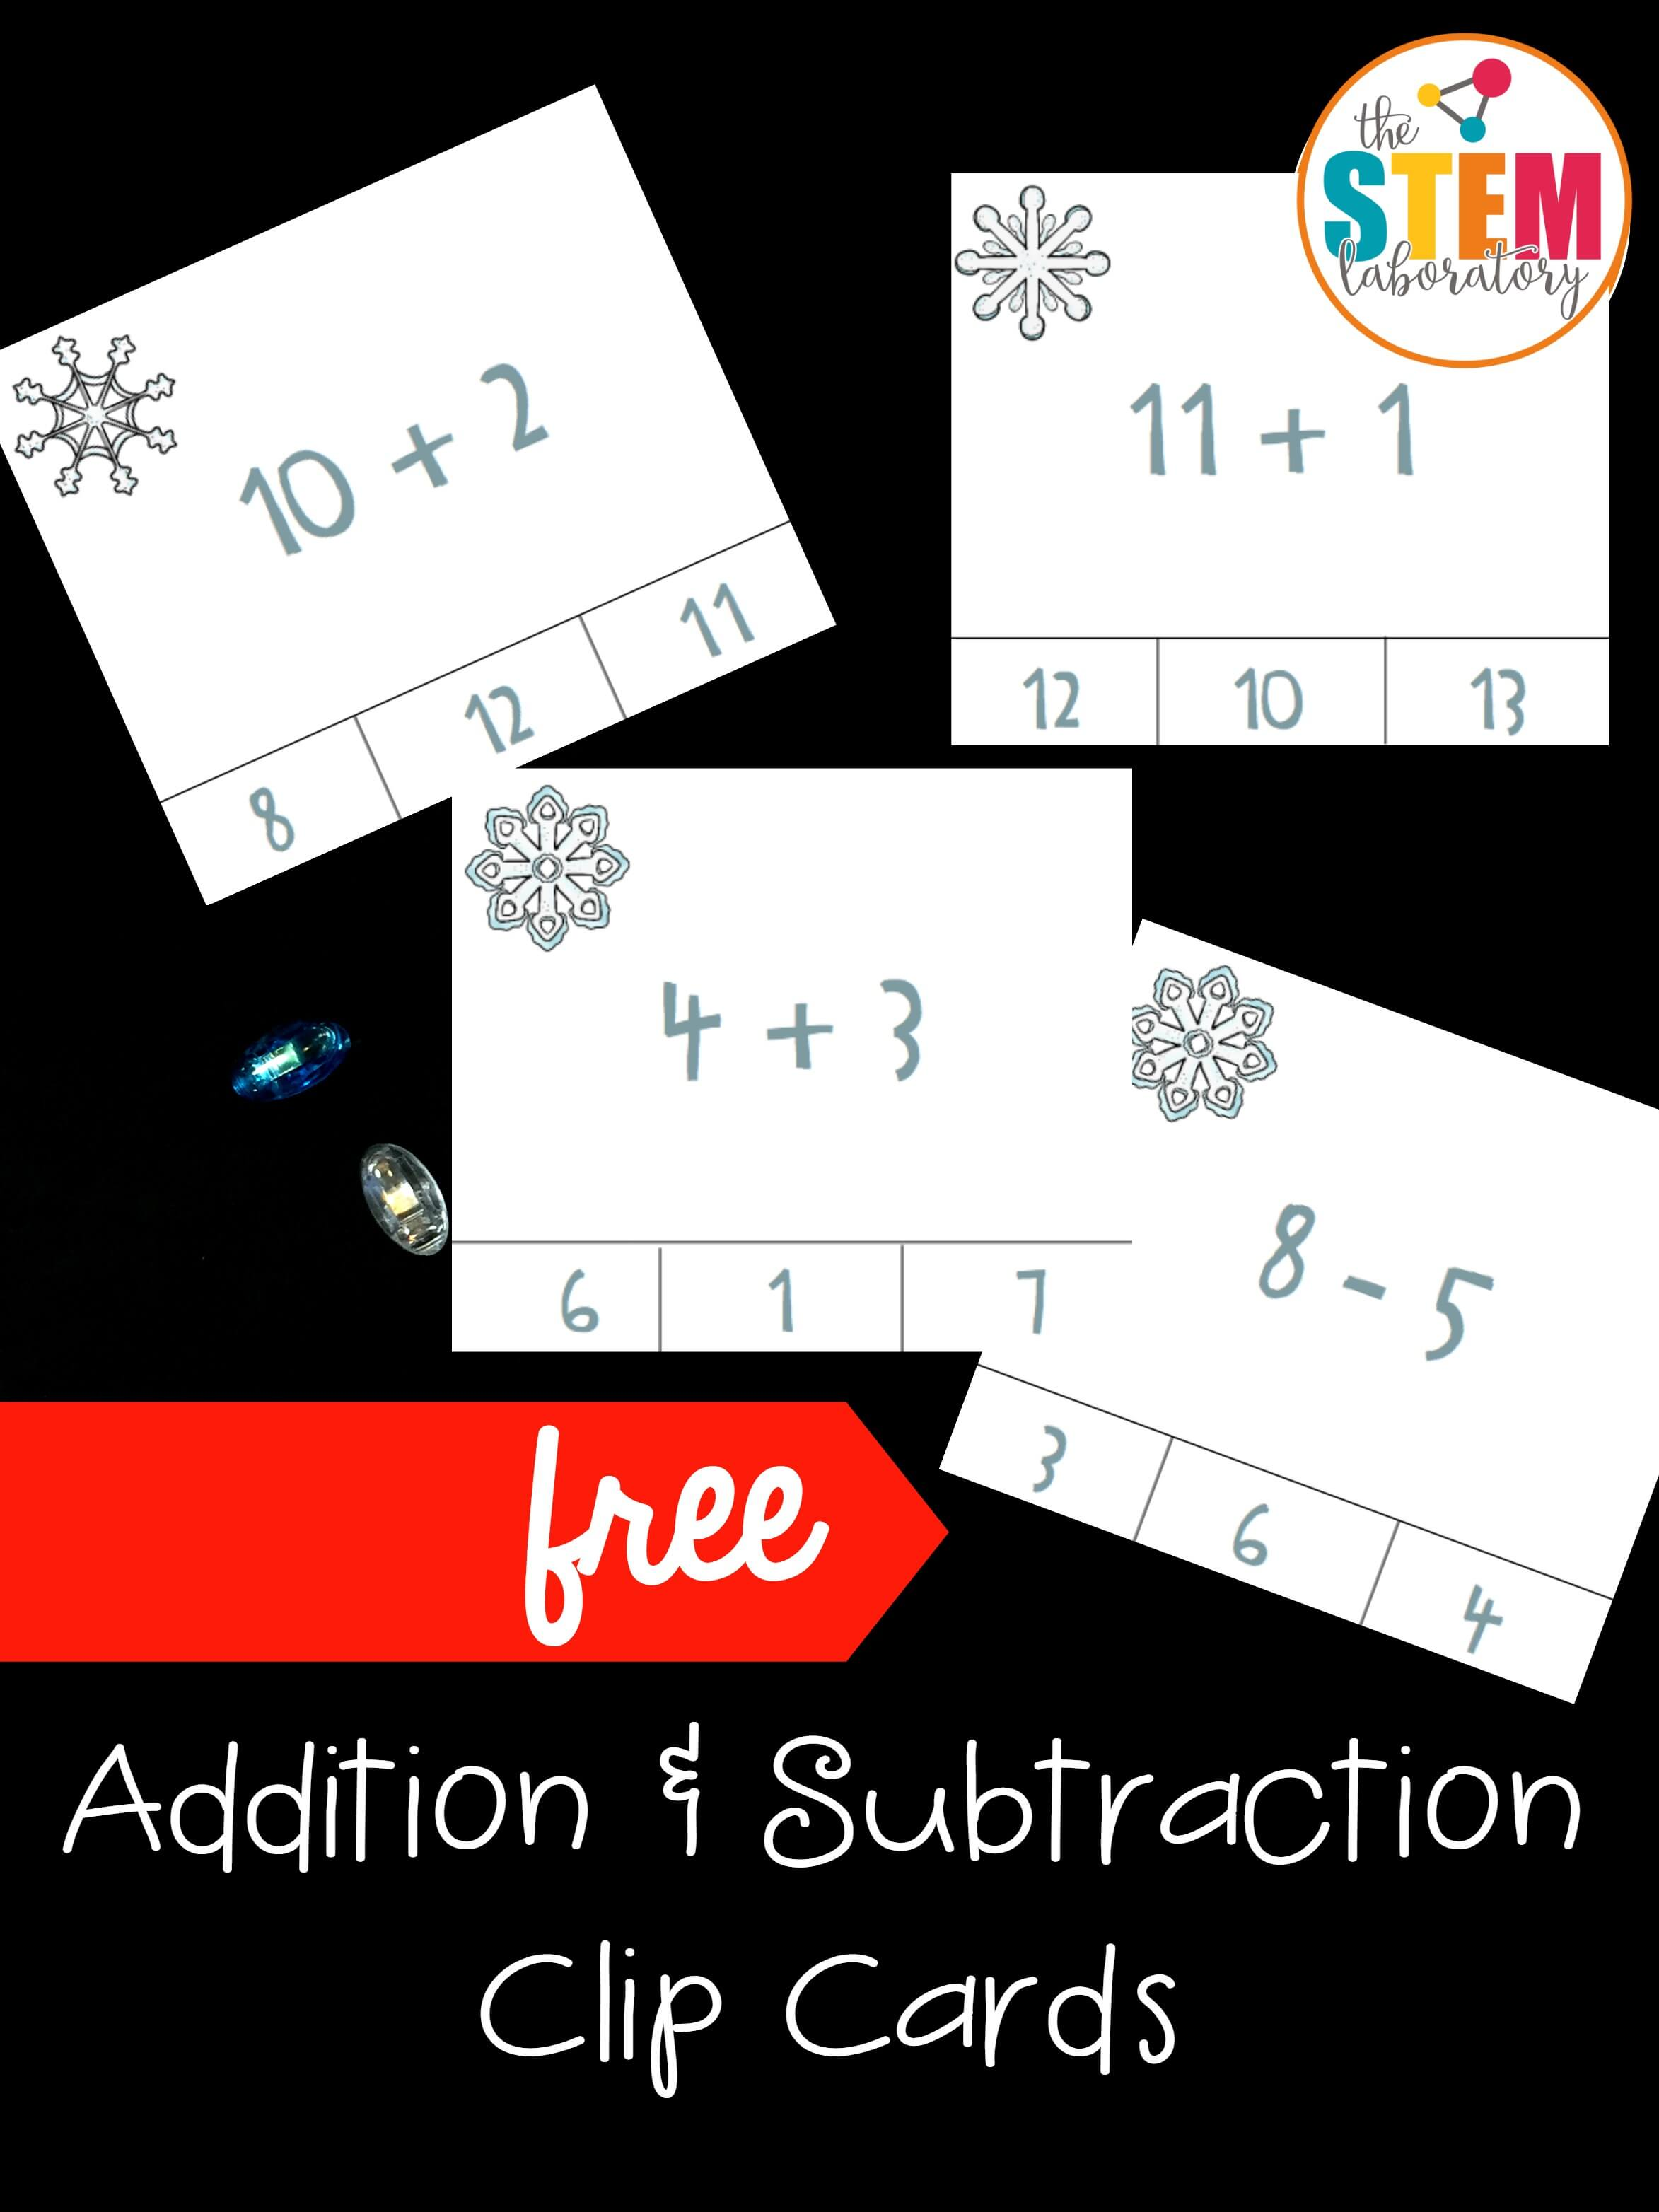 Addition and Subtraction Clip Cards - The Stem Laboratory